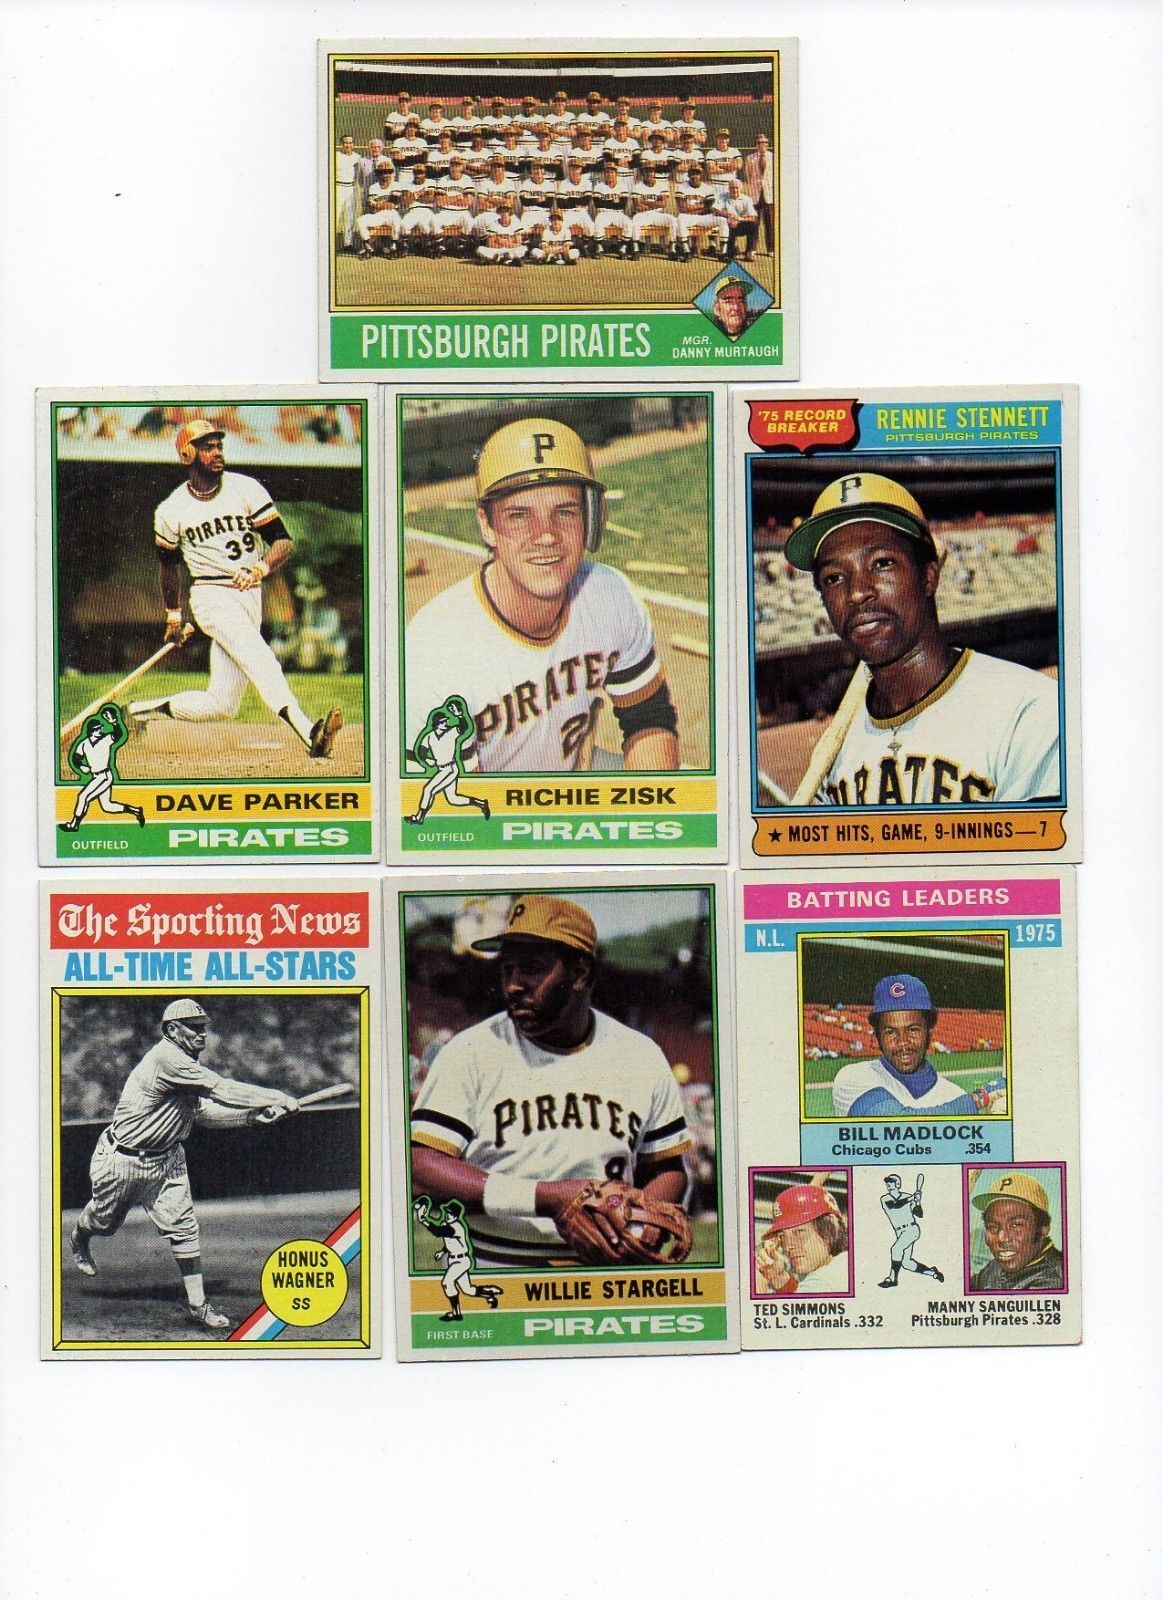 1976 Topps Pittsburgh Pirates Team Set Lot with Traded and Willie Stargell